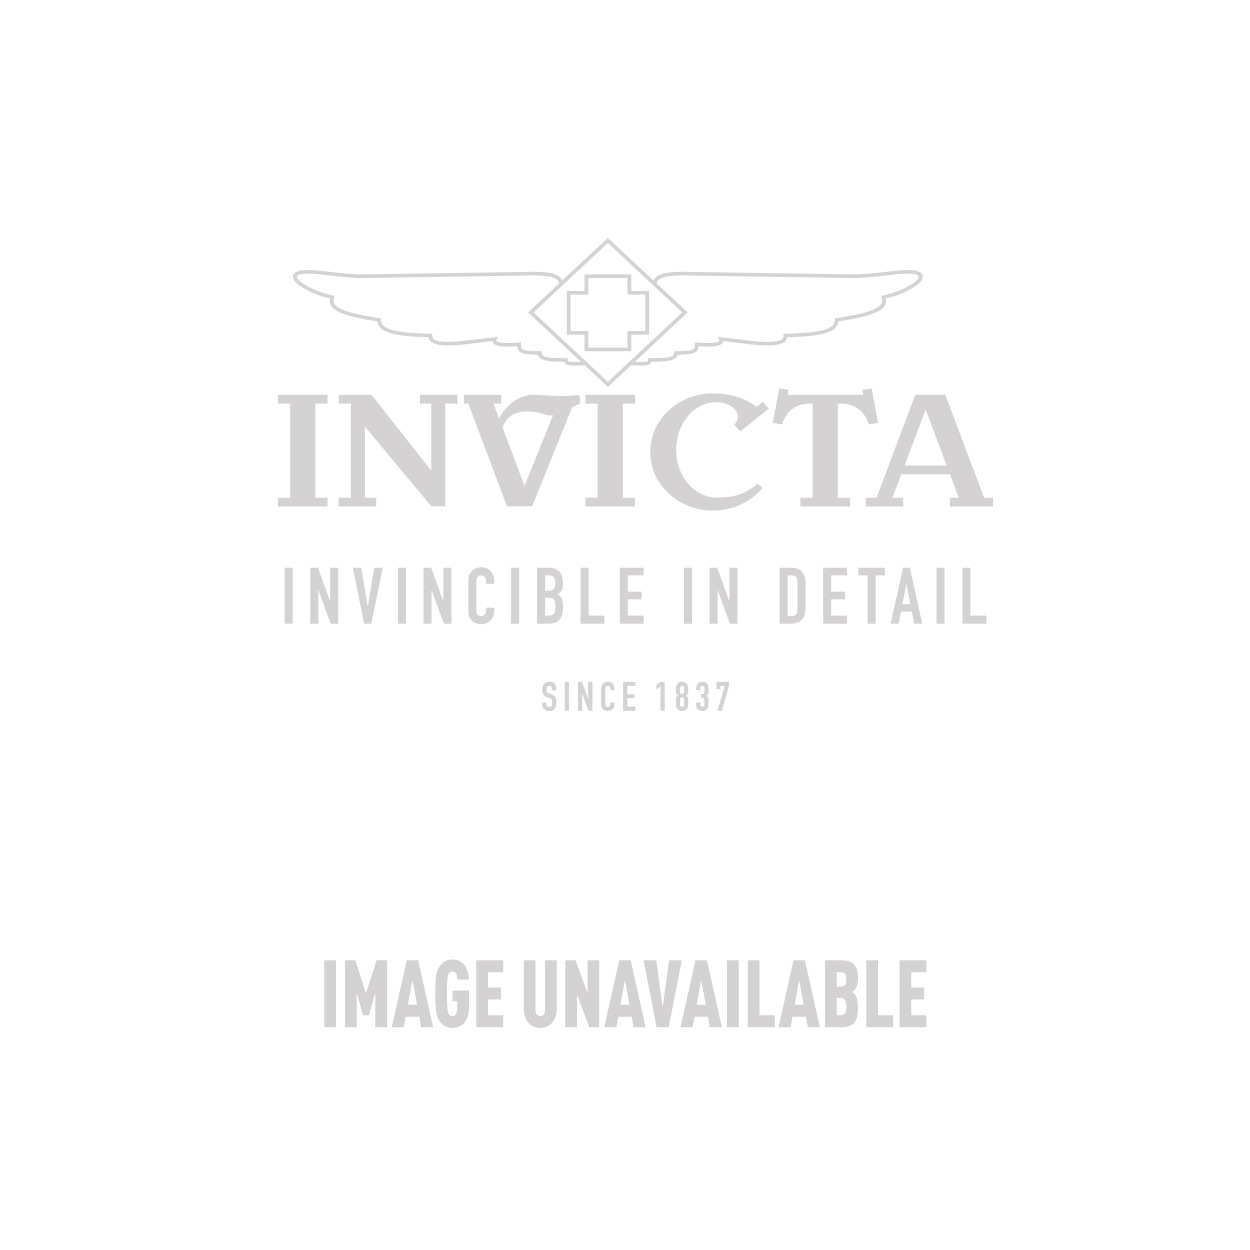 Invicta Bolt Swiss Made Quartz Watch - Black, Stainless Steel case with Steel, Black tone Stainless Steel band - Model 90024